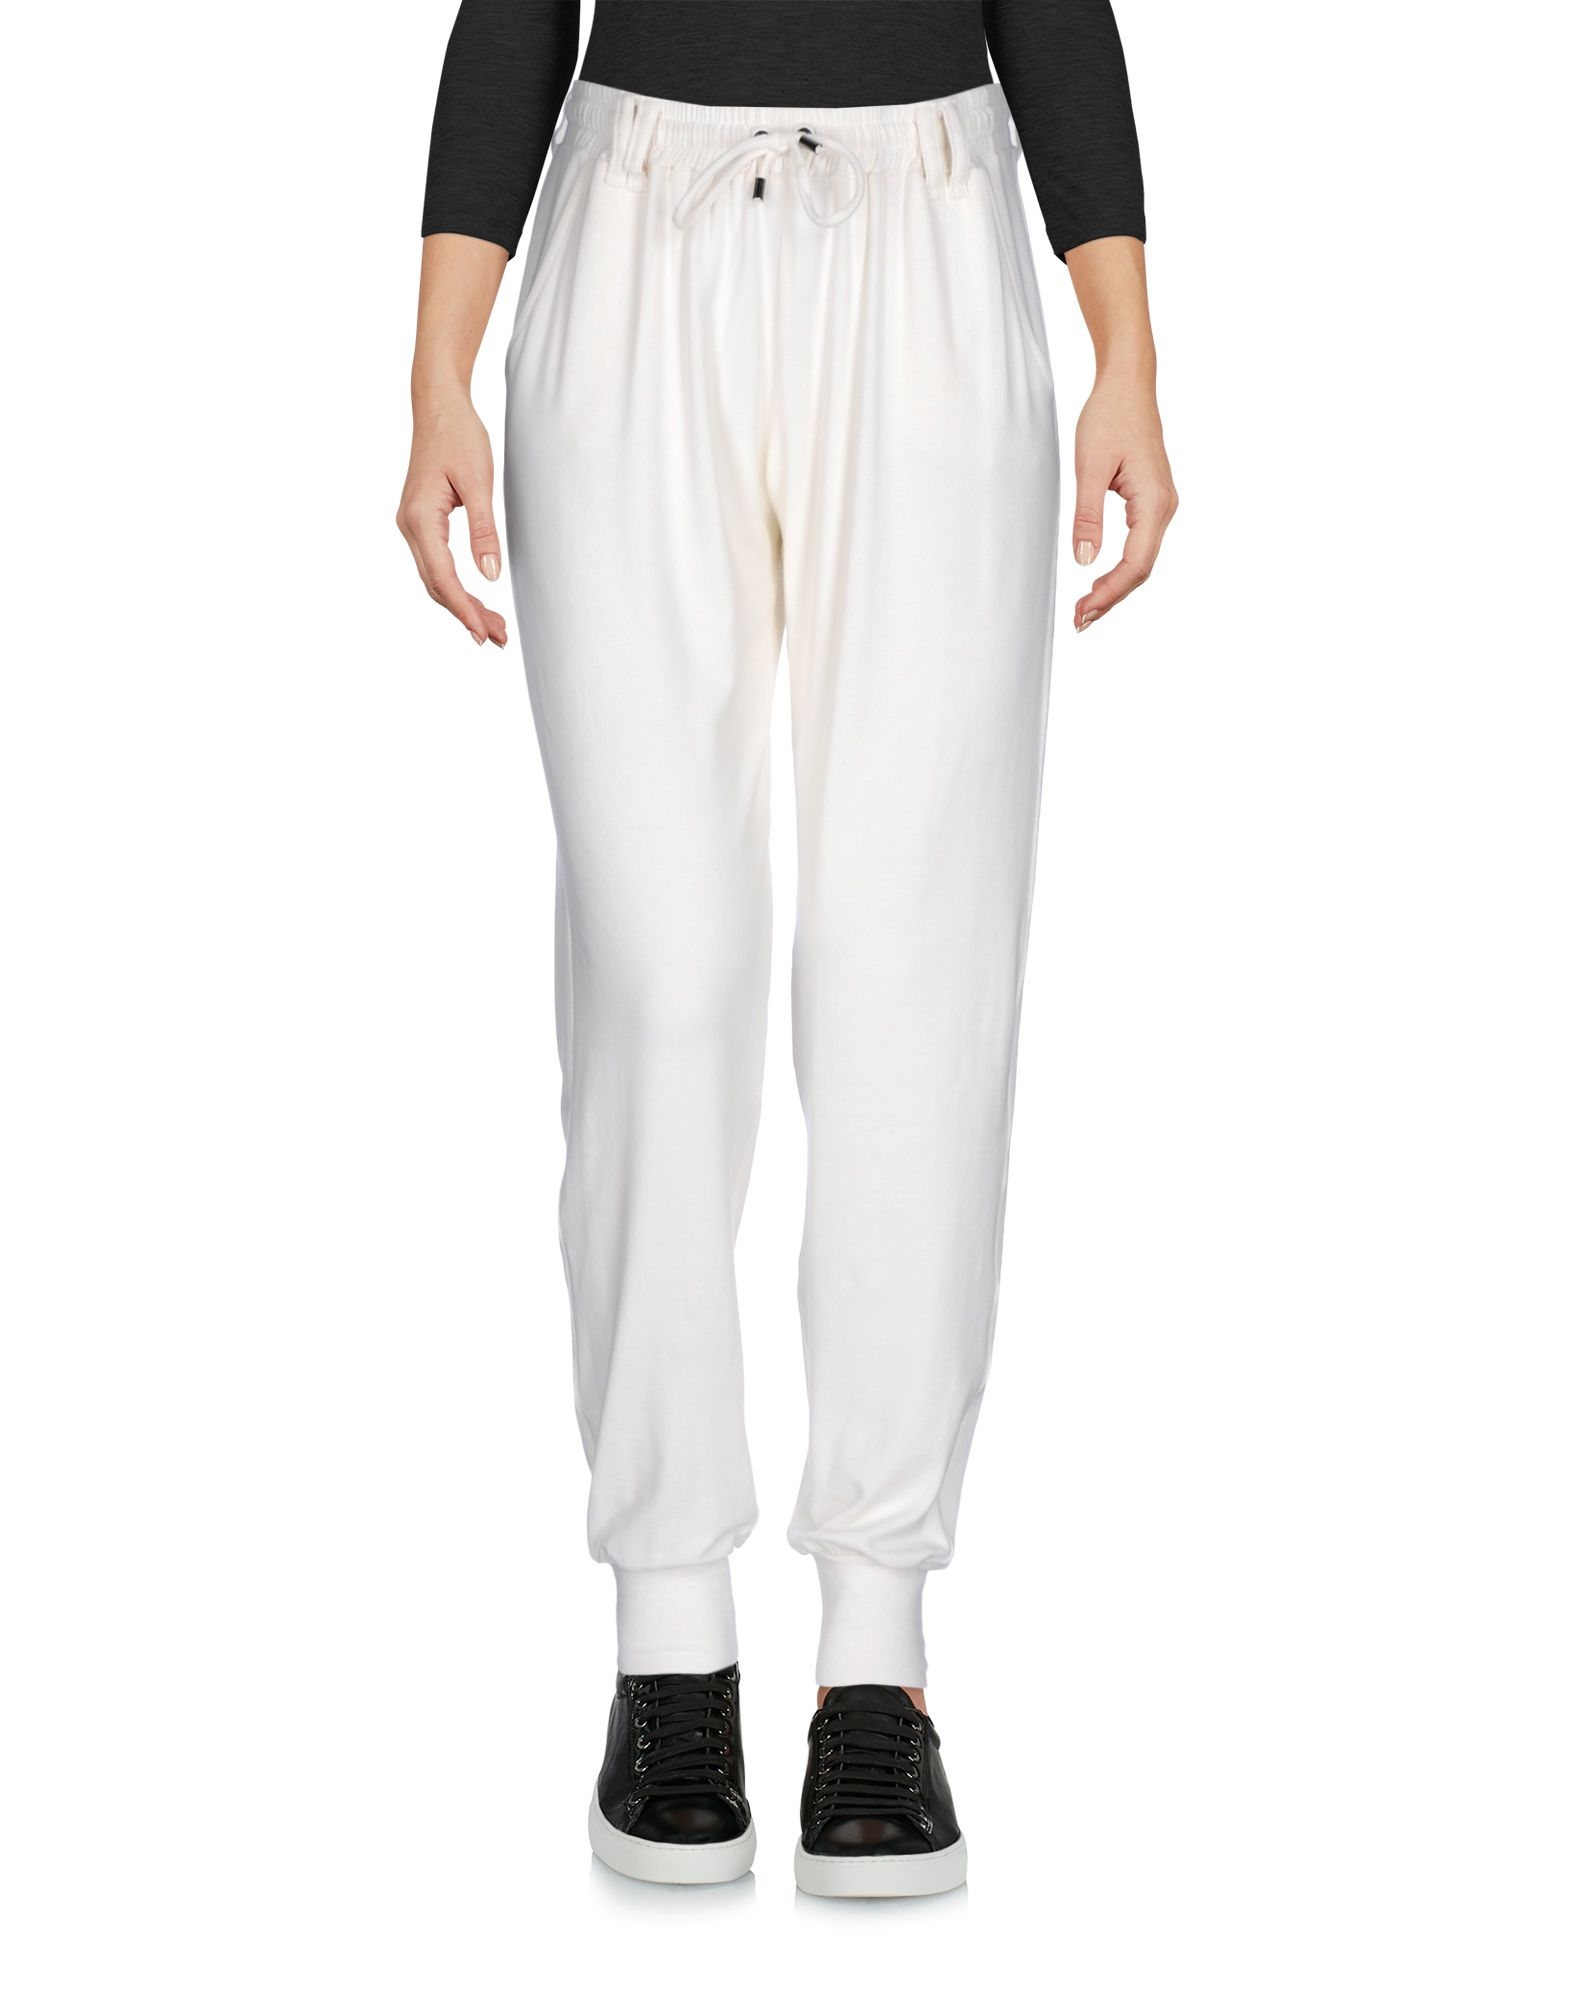 PLEIN SUD JEANIUS Casual Pants in Ivory